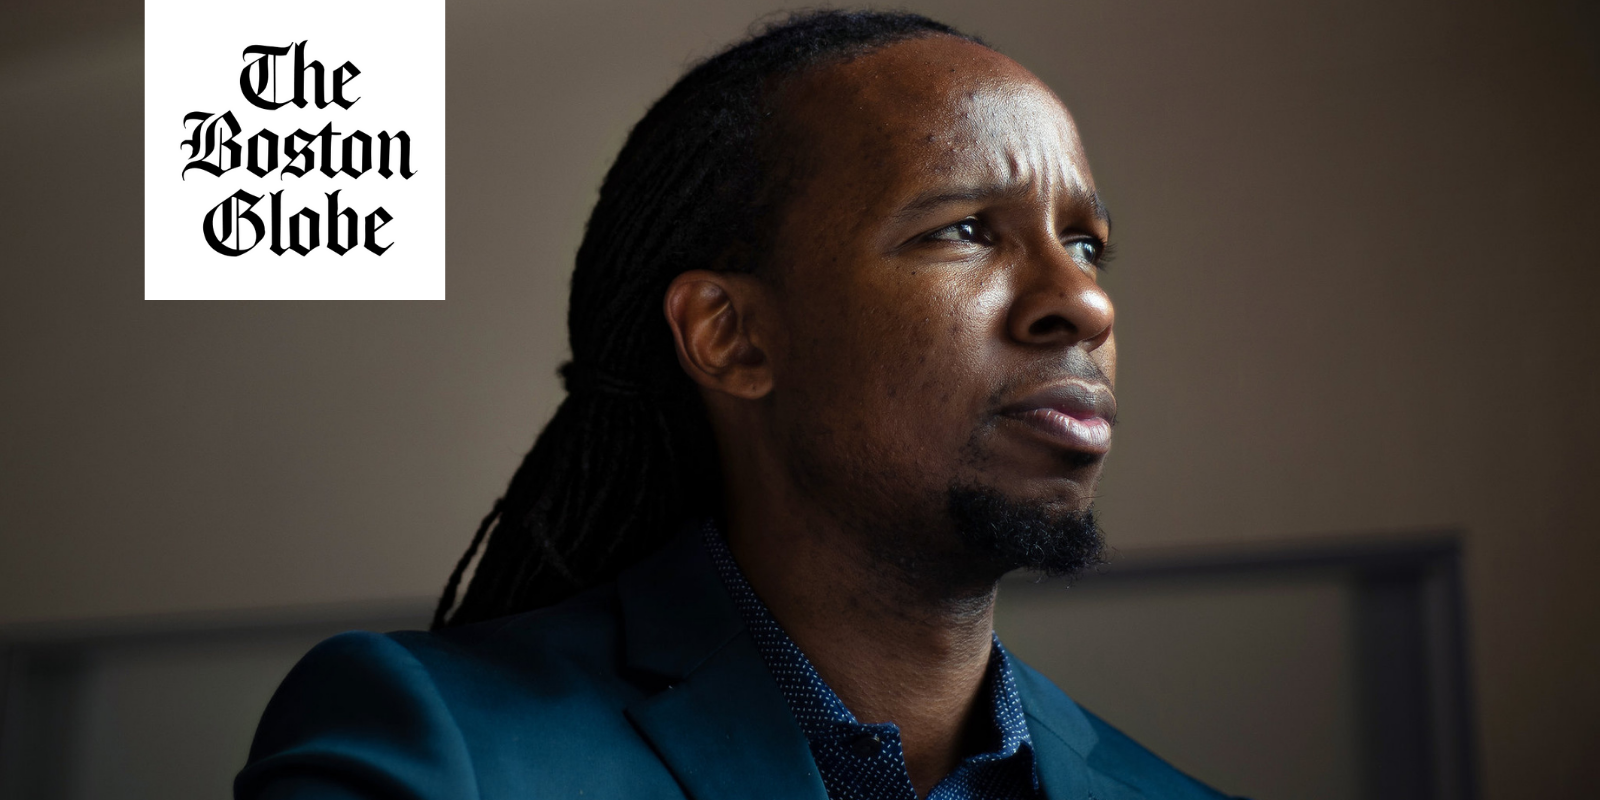 Ibram X. Kendi and Boston Globe's editorial team to create 'antiracist' news outlet